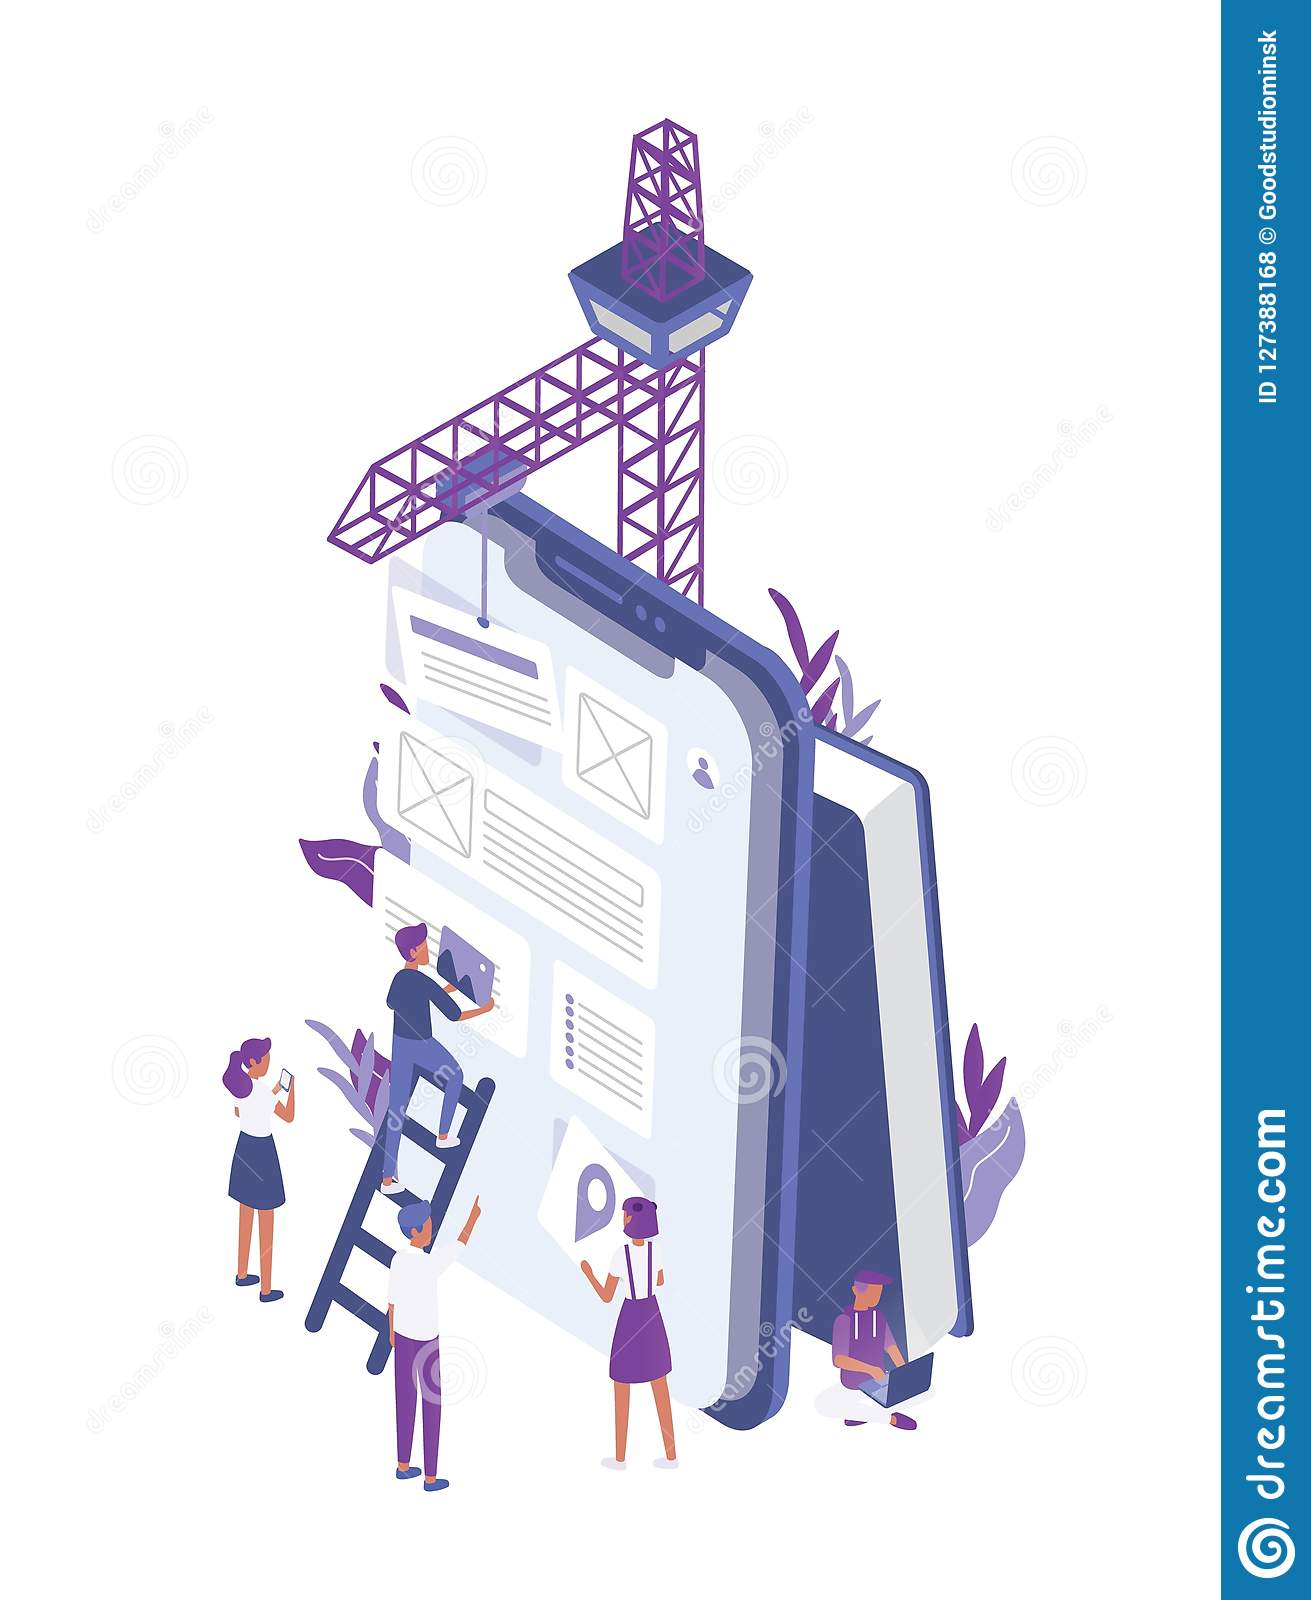 Group of tiny people creating or building mobile app design on giant tablet PC. Office workers working in interface and